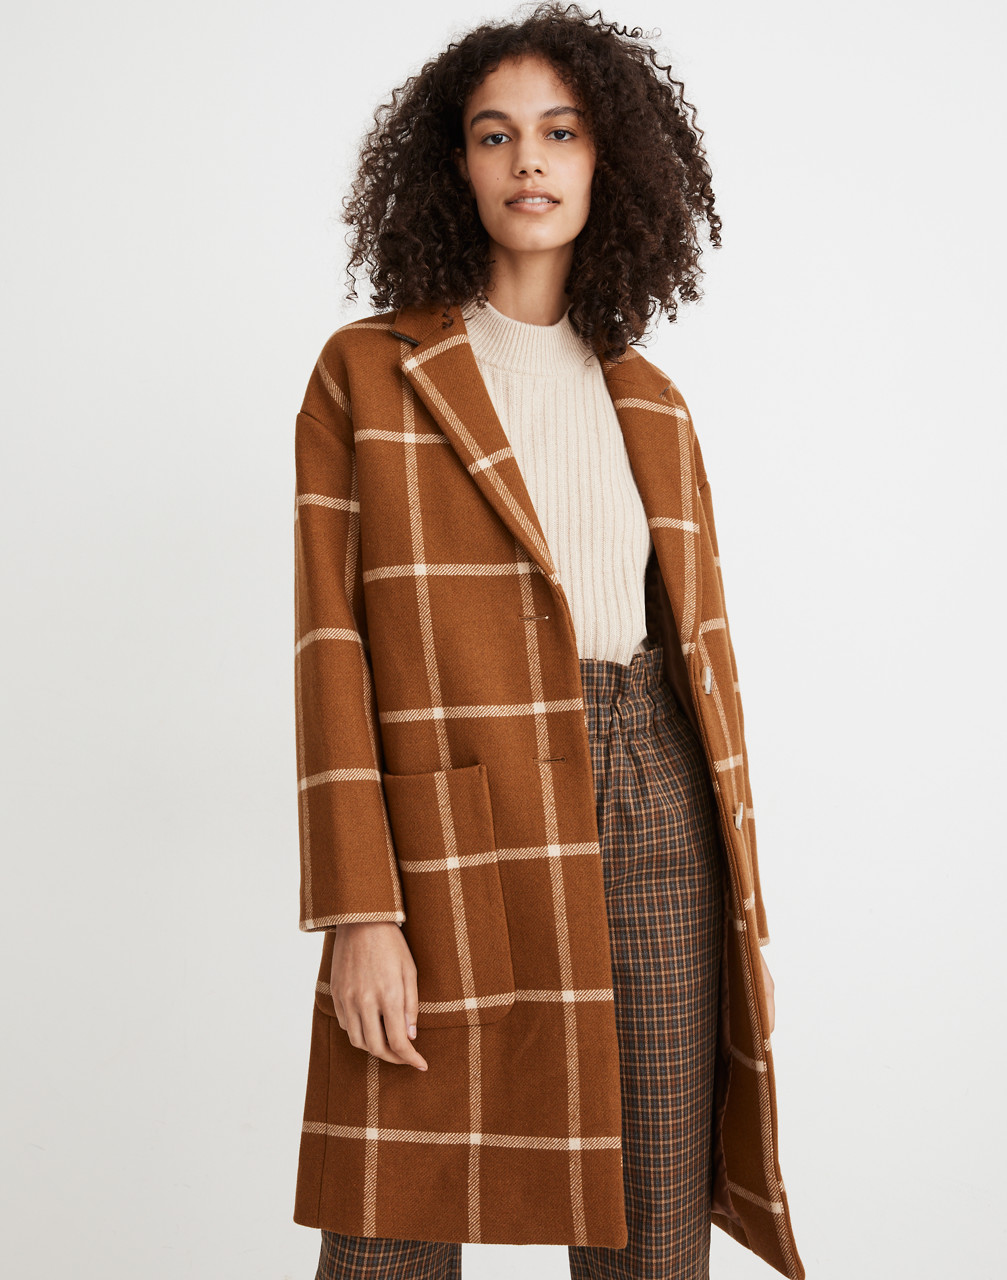 70s Jackets, Furs, Vests, Ponchos Windowpane Elmcourt Coat in Insuluxe Fabric $288.00 AT vintagedancer.com